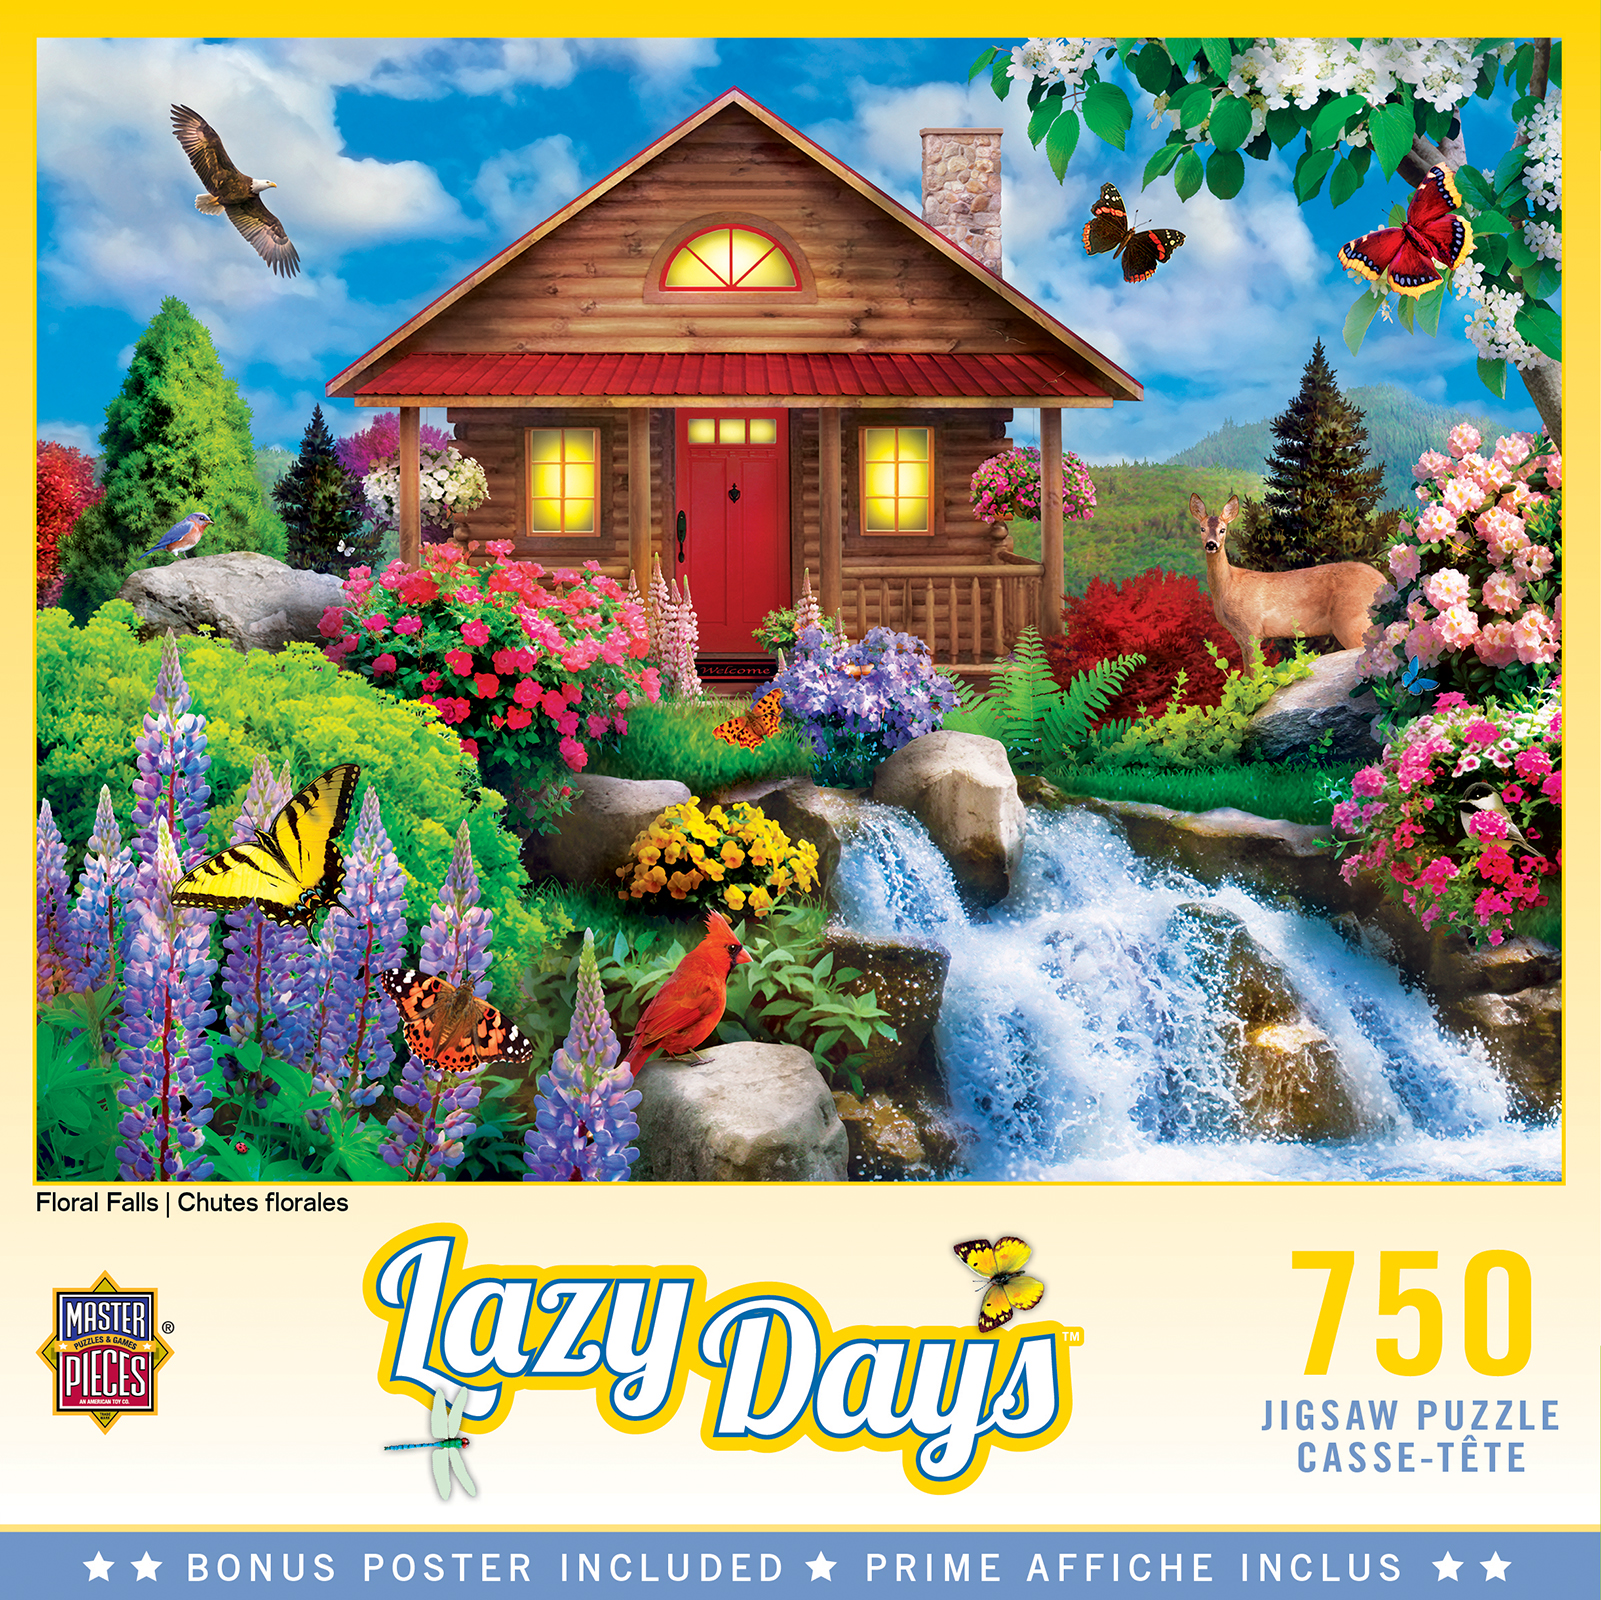 Floral Falls Cottage / Cabin Jigsaw Puzzle